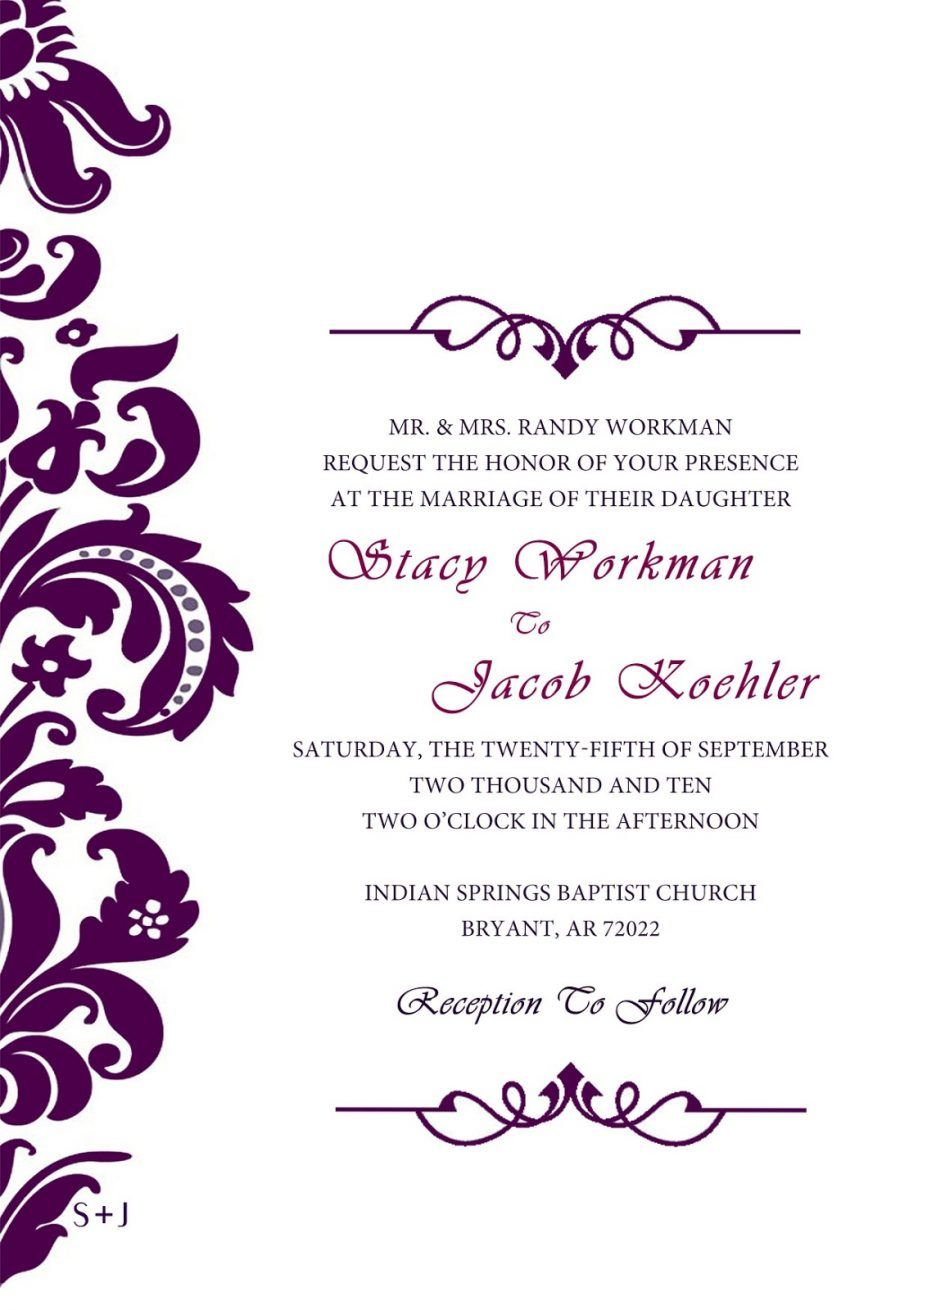 wedding invitation templates invitations wedding formal wedding ...